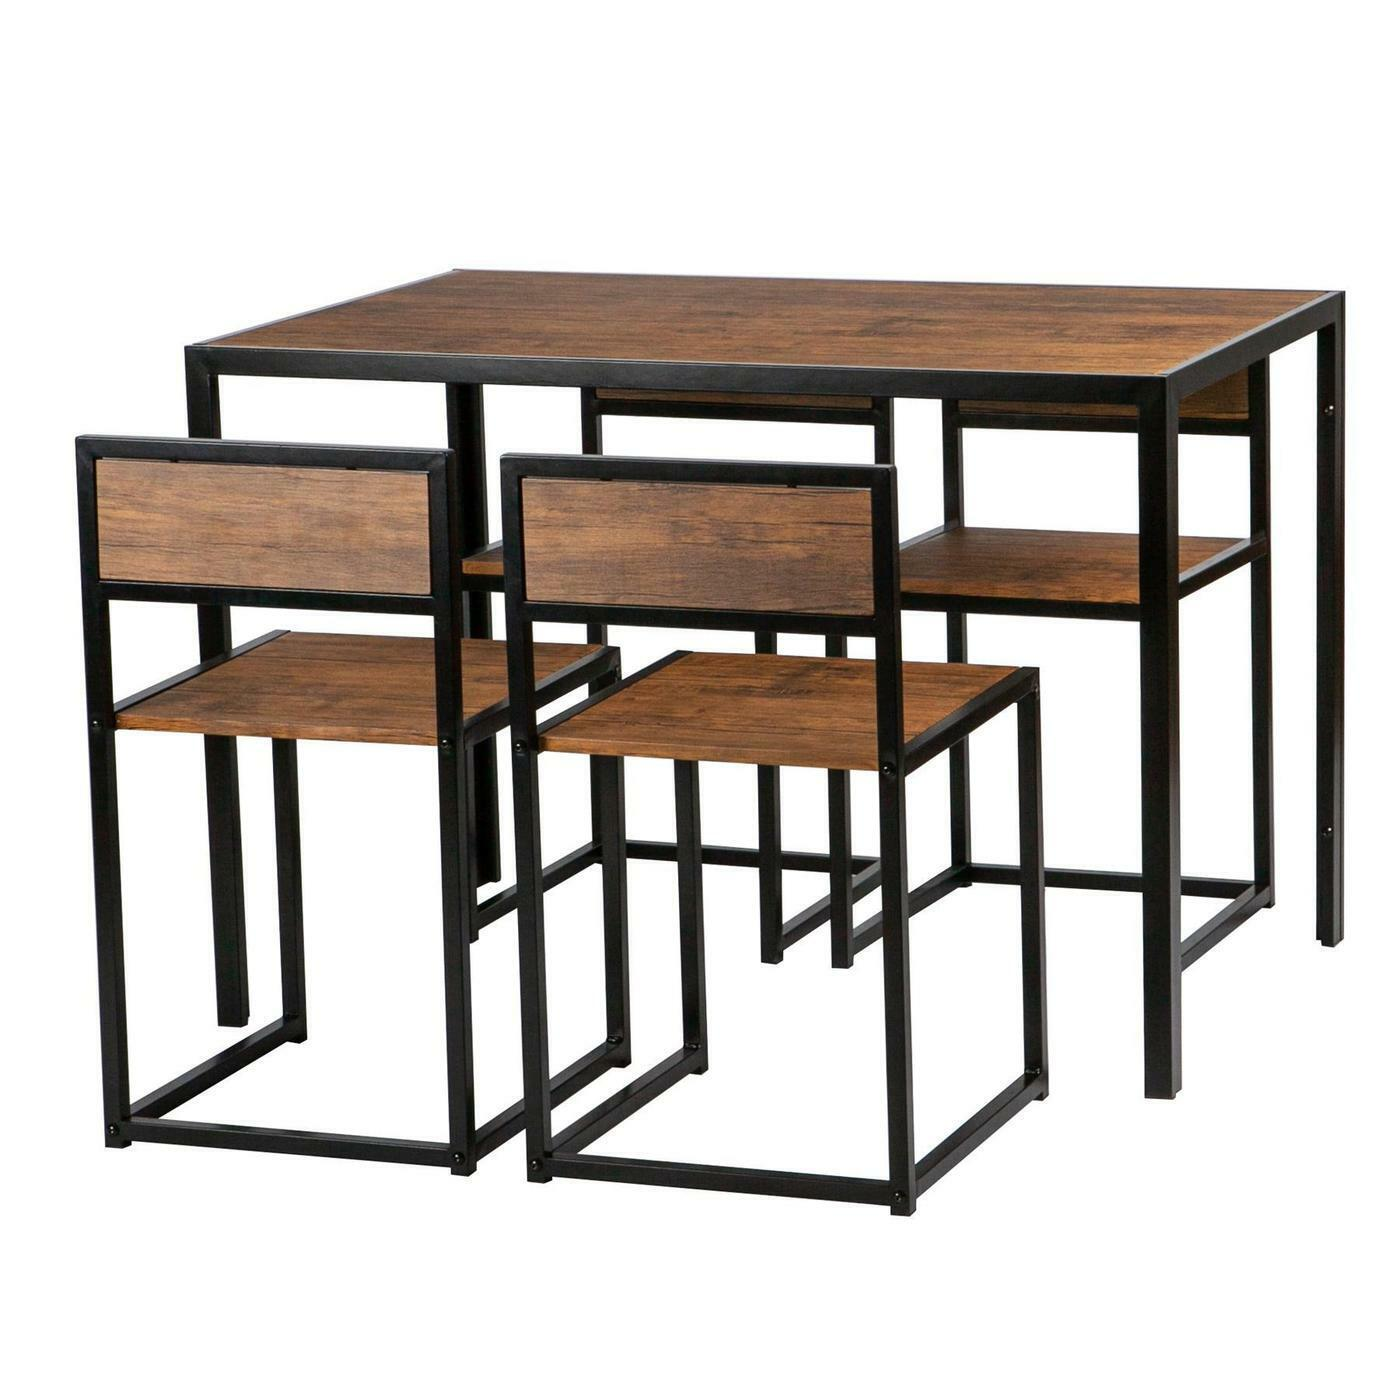 Picture of: Ikea Fusion Space Saving Cubed Dining Room Table Set 4 Chairs Walnut Finish For Sale Ebay